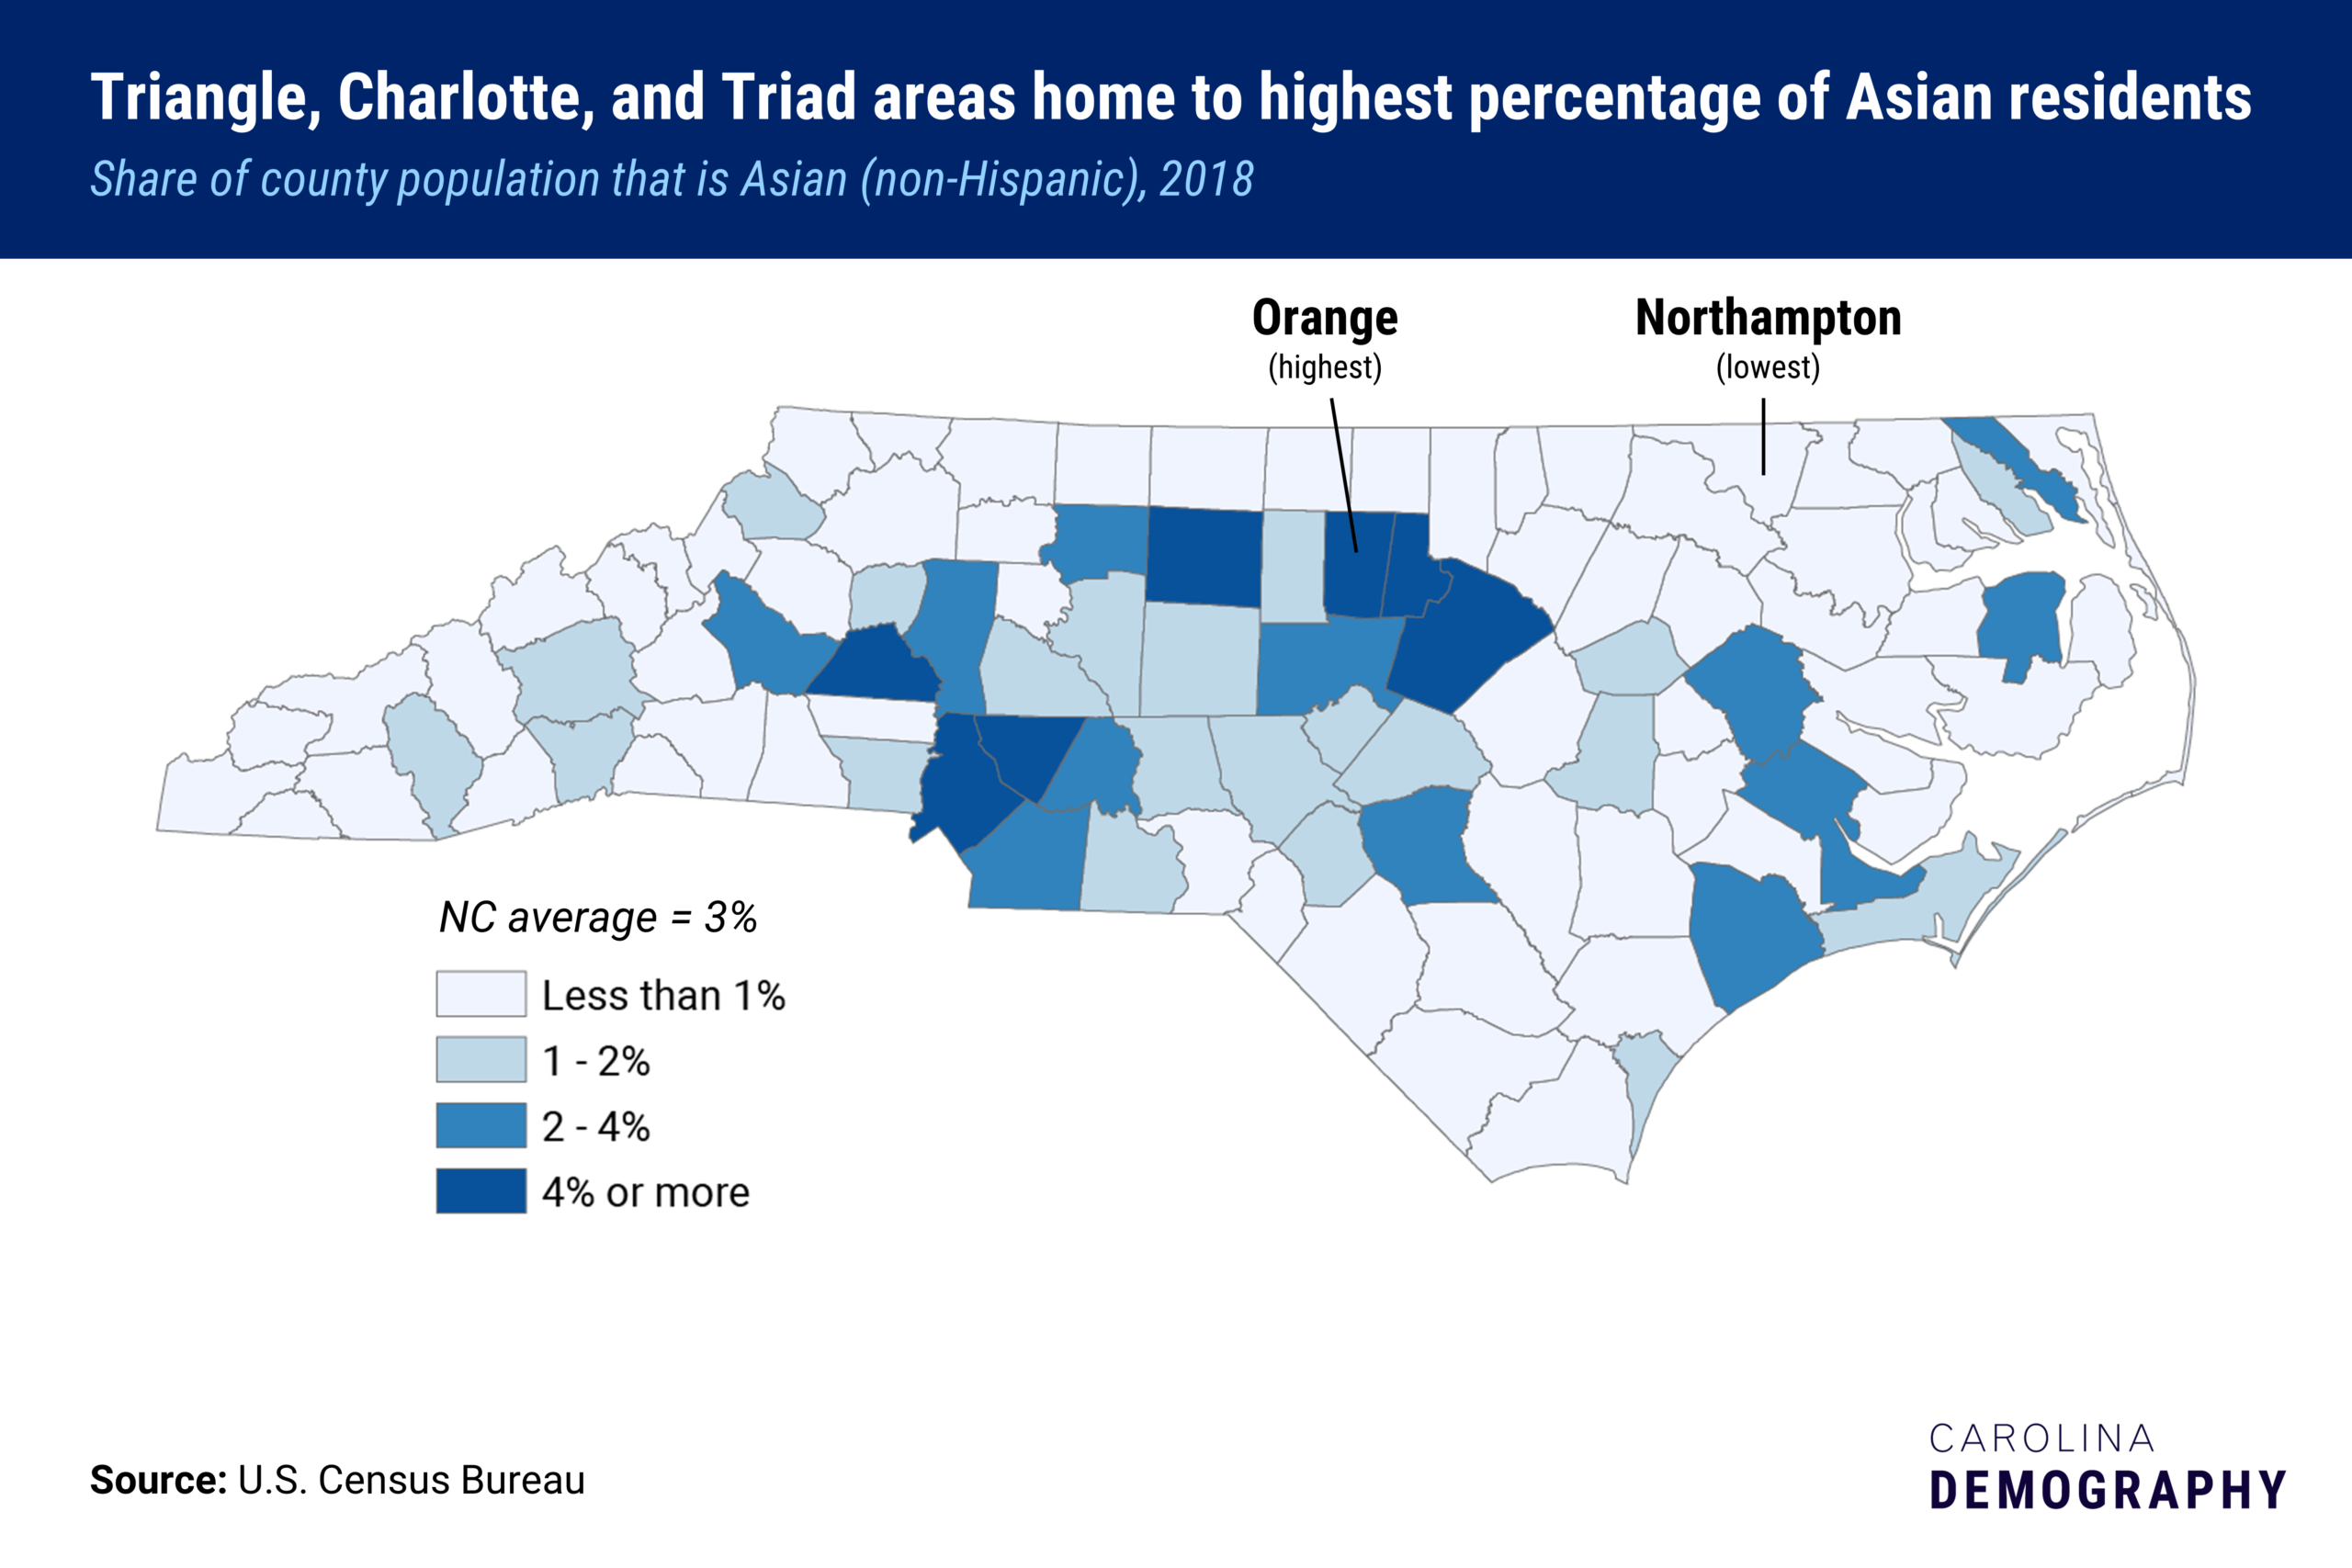 A county map of North Carolina showing the share of county population that is Asian. Orange county has the highest share, where Newhampton county has the lowest. The state average is 3 percent.